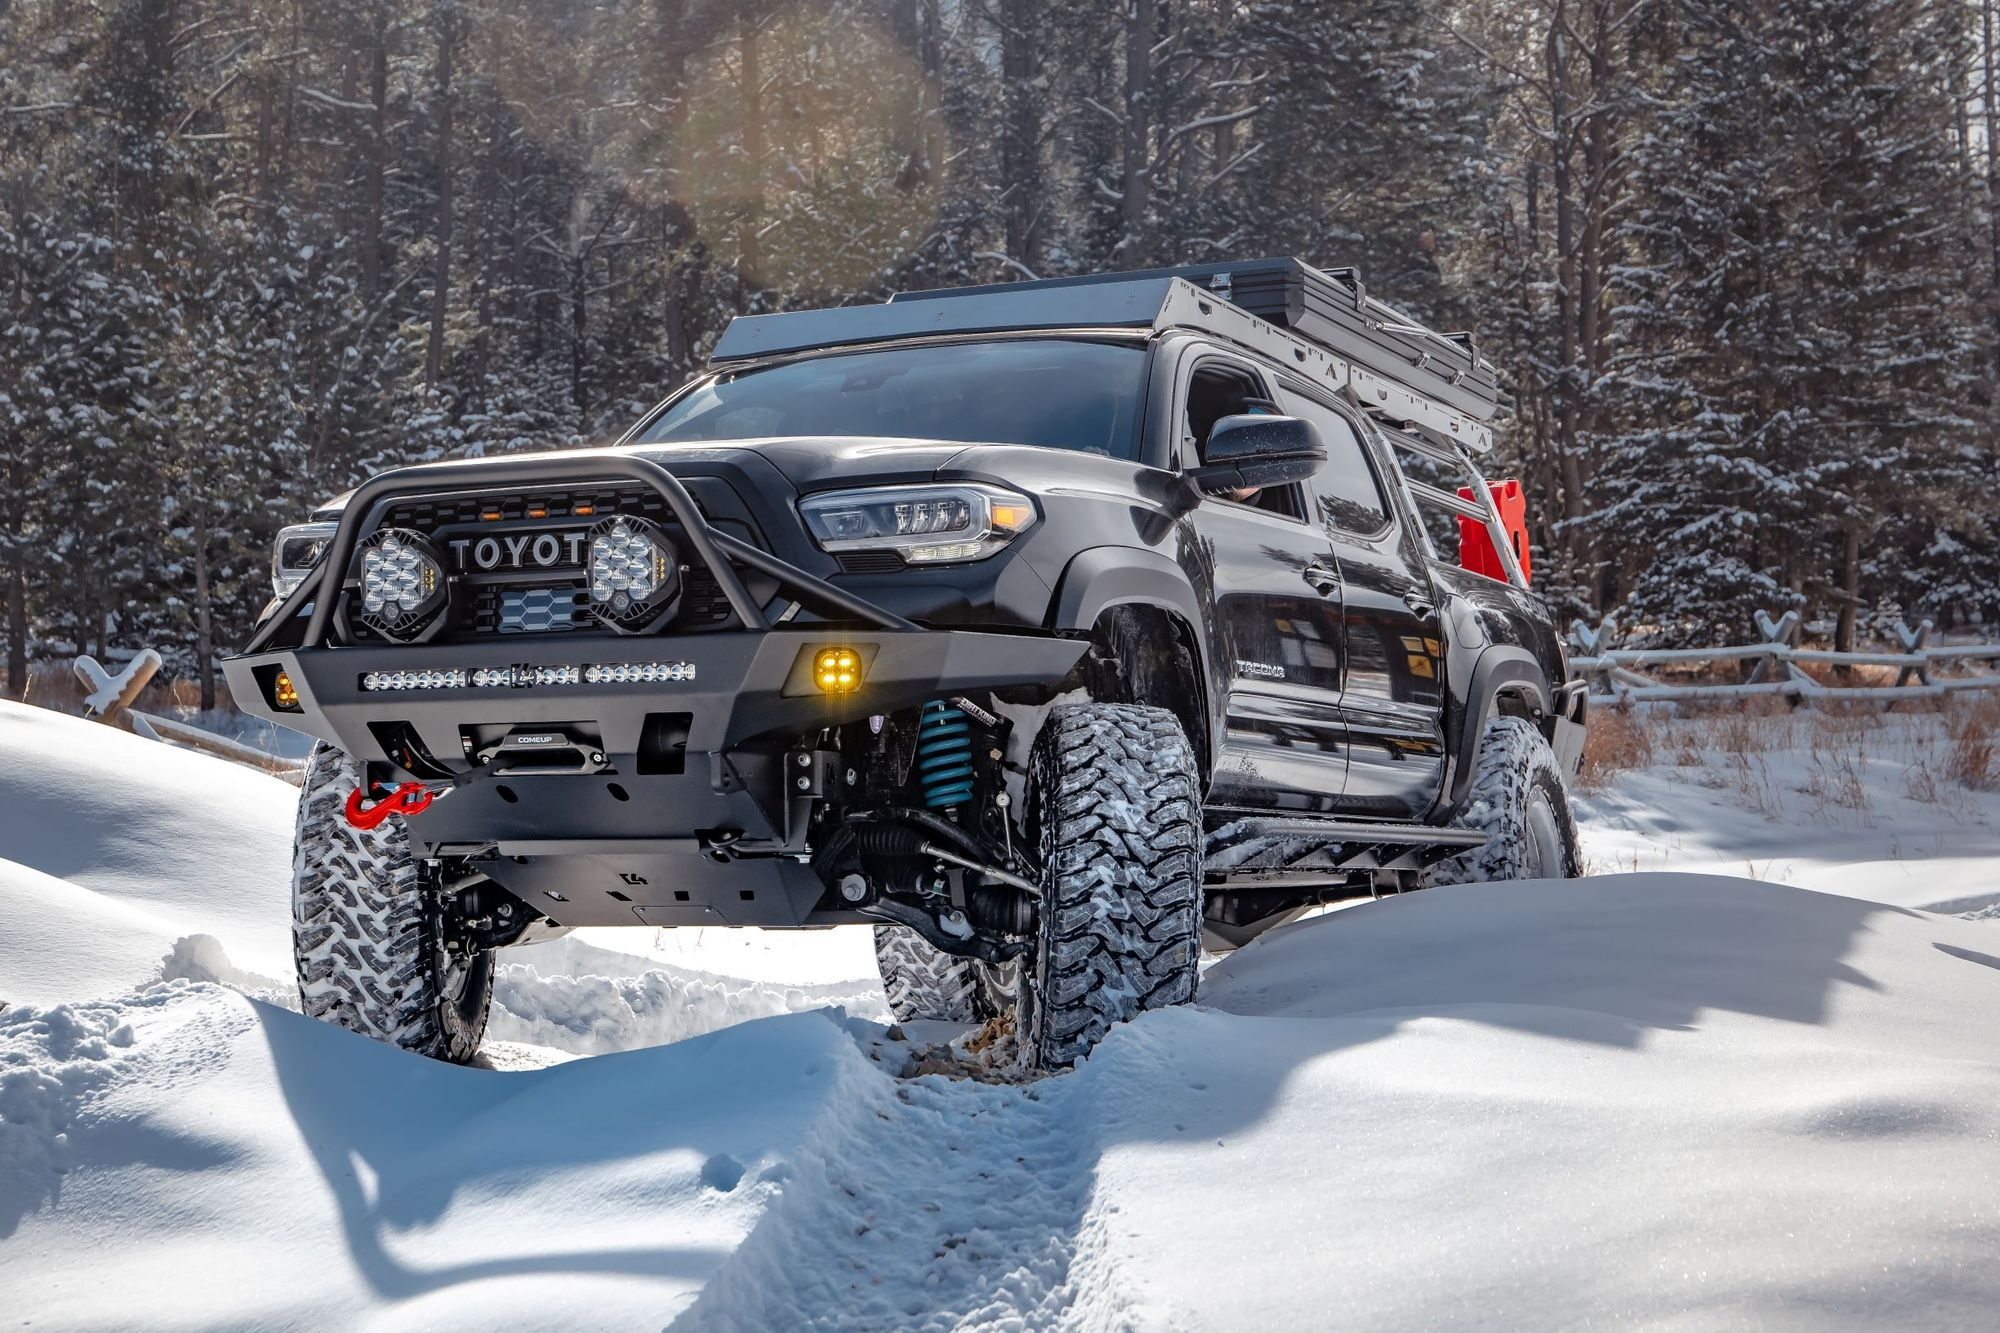 C4 OVERLAND SERIES FRONT BUMPER 2016+ TACOMA (3RD GEN)